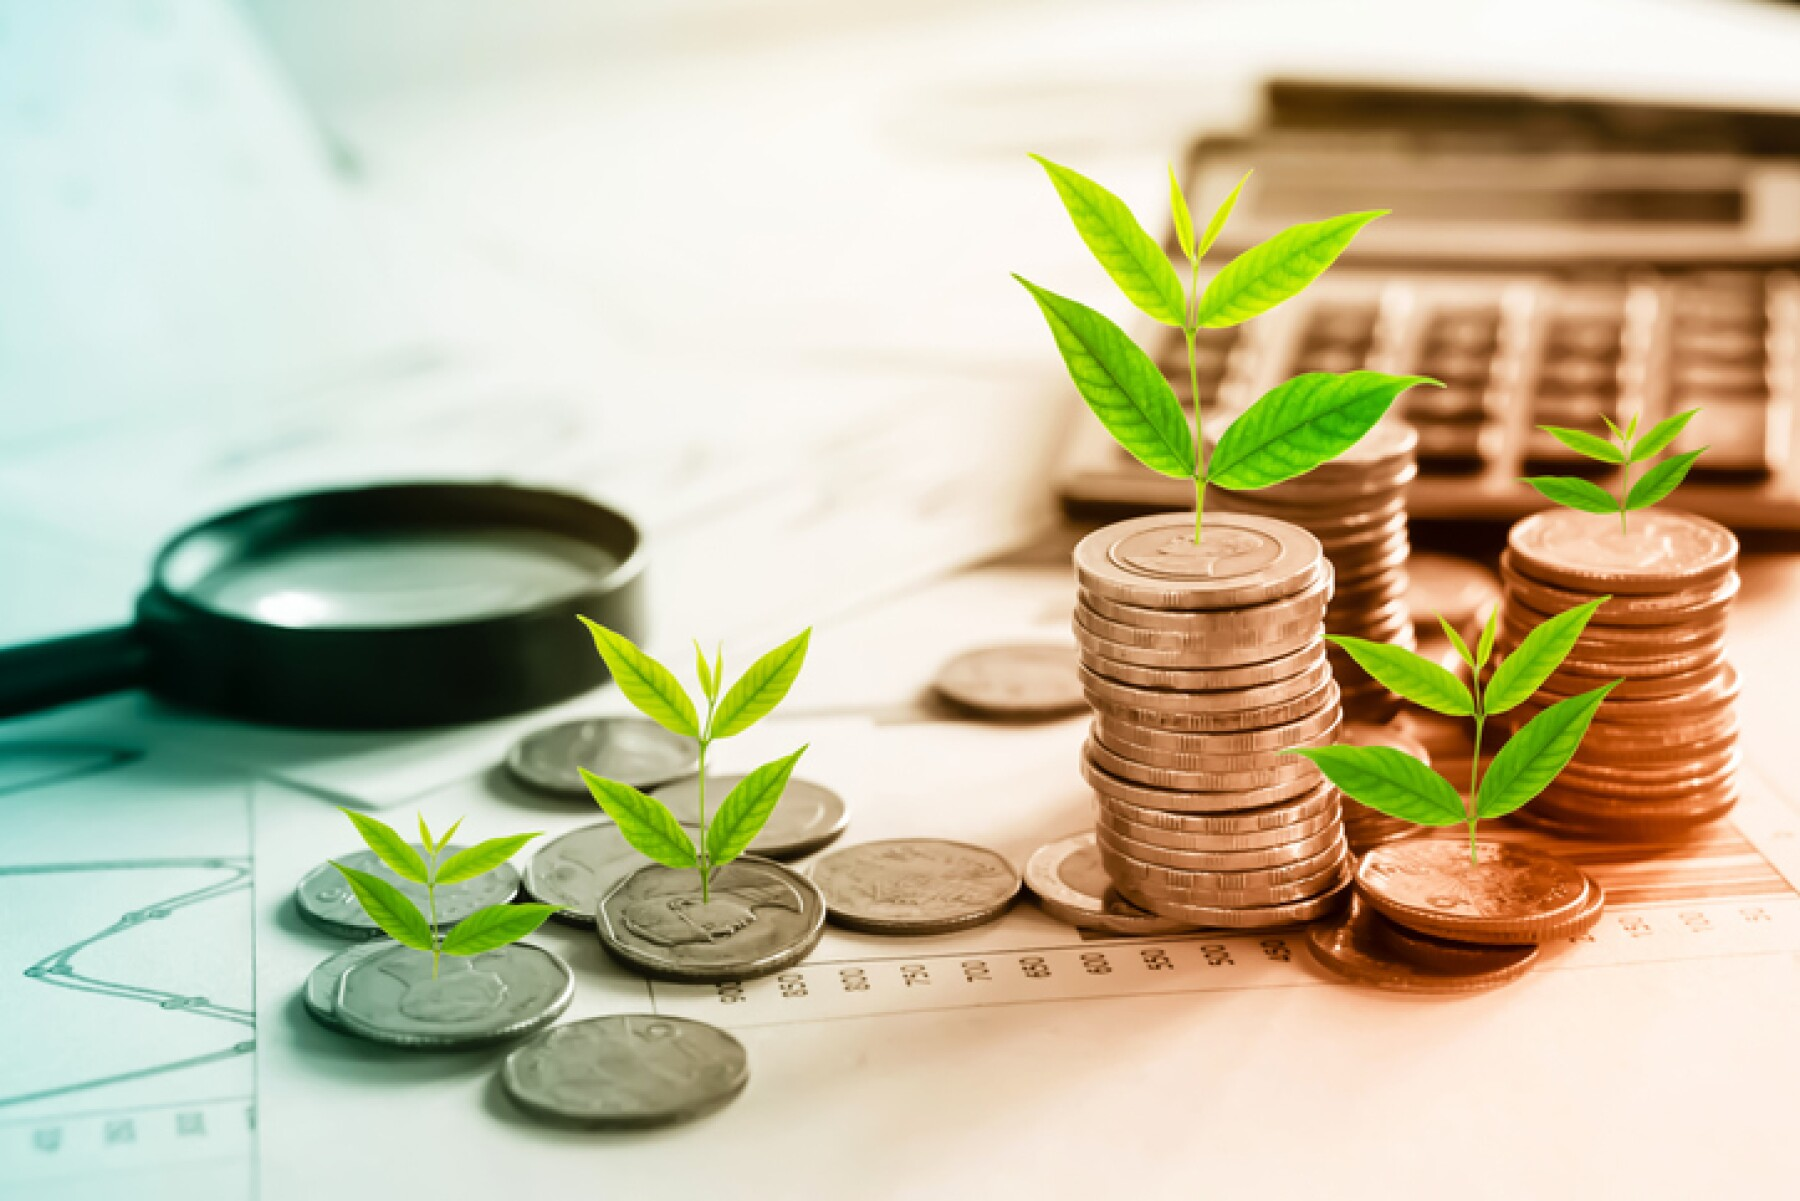 tree growing on coins idea for growing business concept